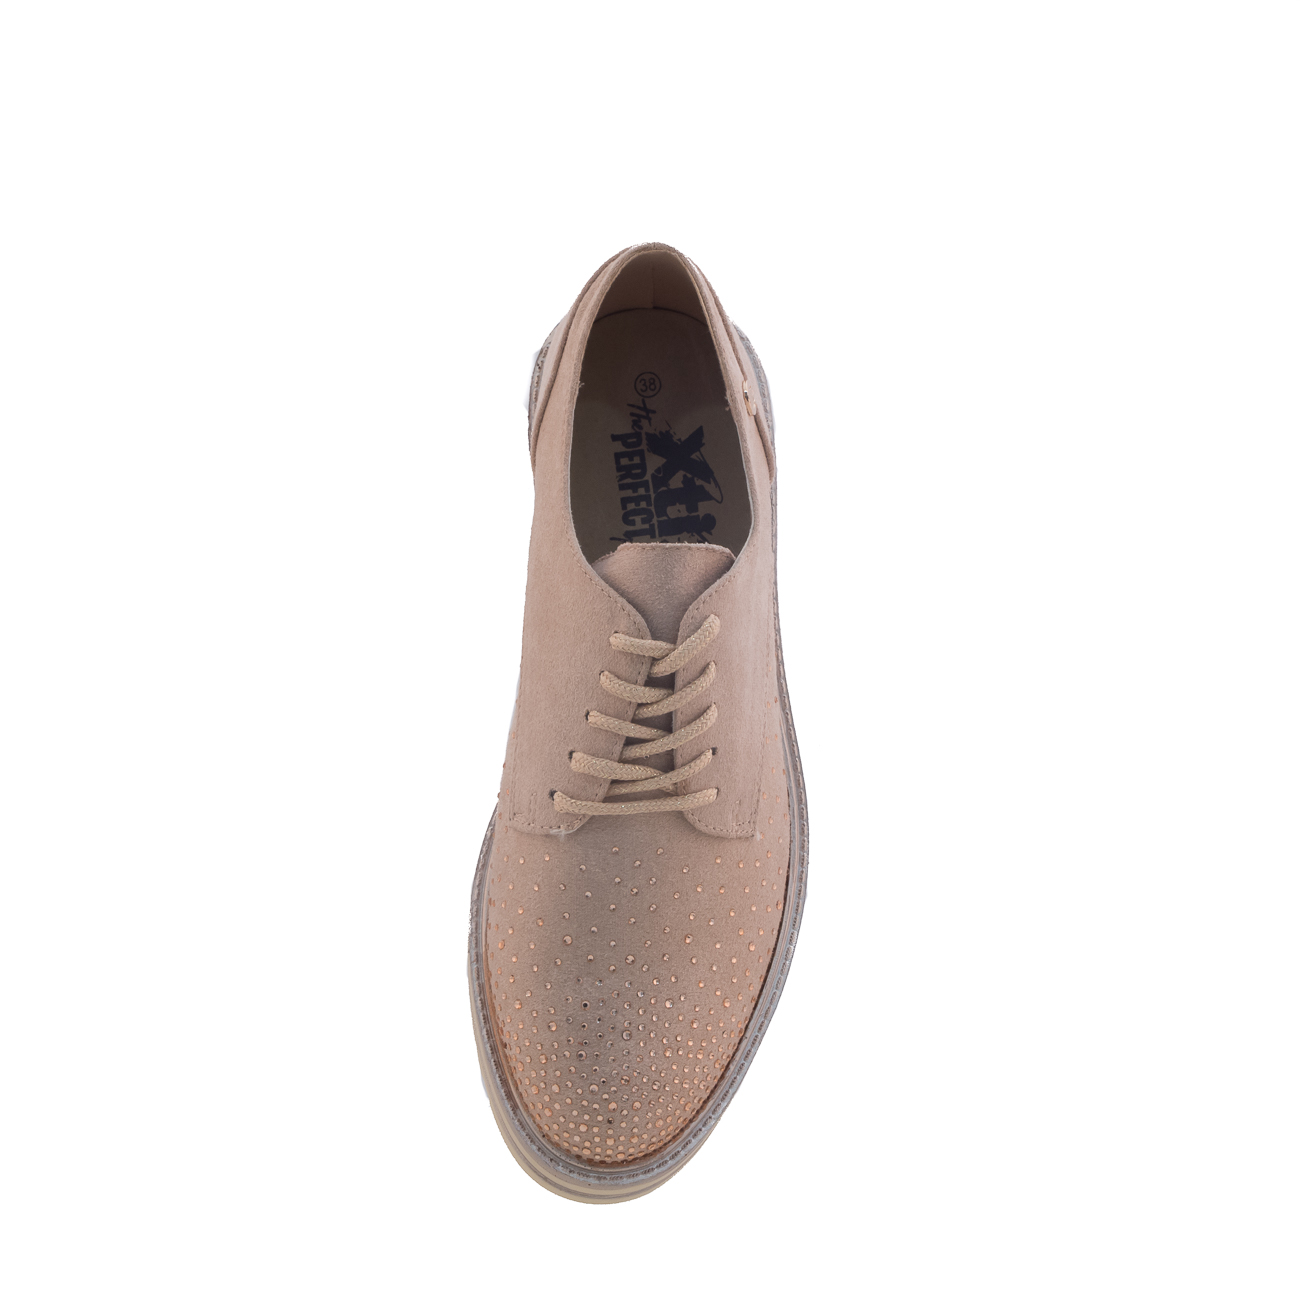 XTI ΓΥΝΑΙΚΕΙΟ ΠΑΠΟΥΤΣΙ CASUAL OXFORD   47800